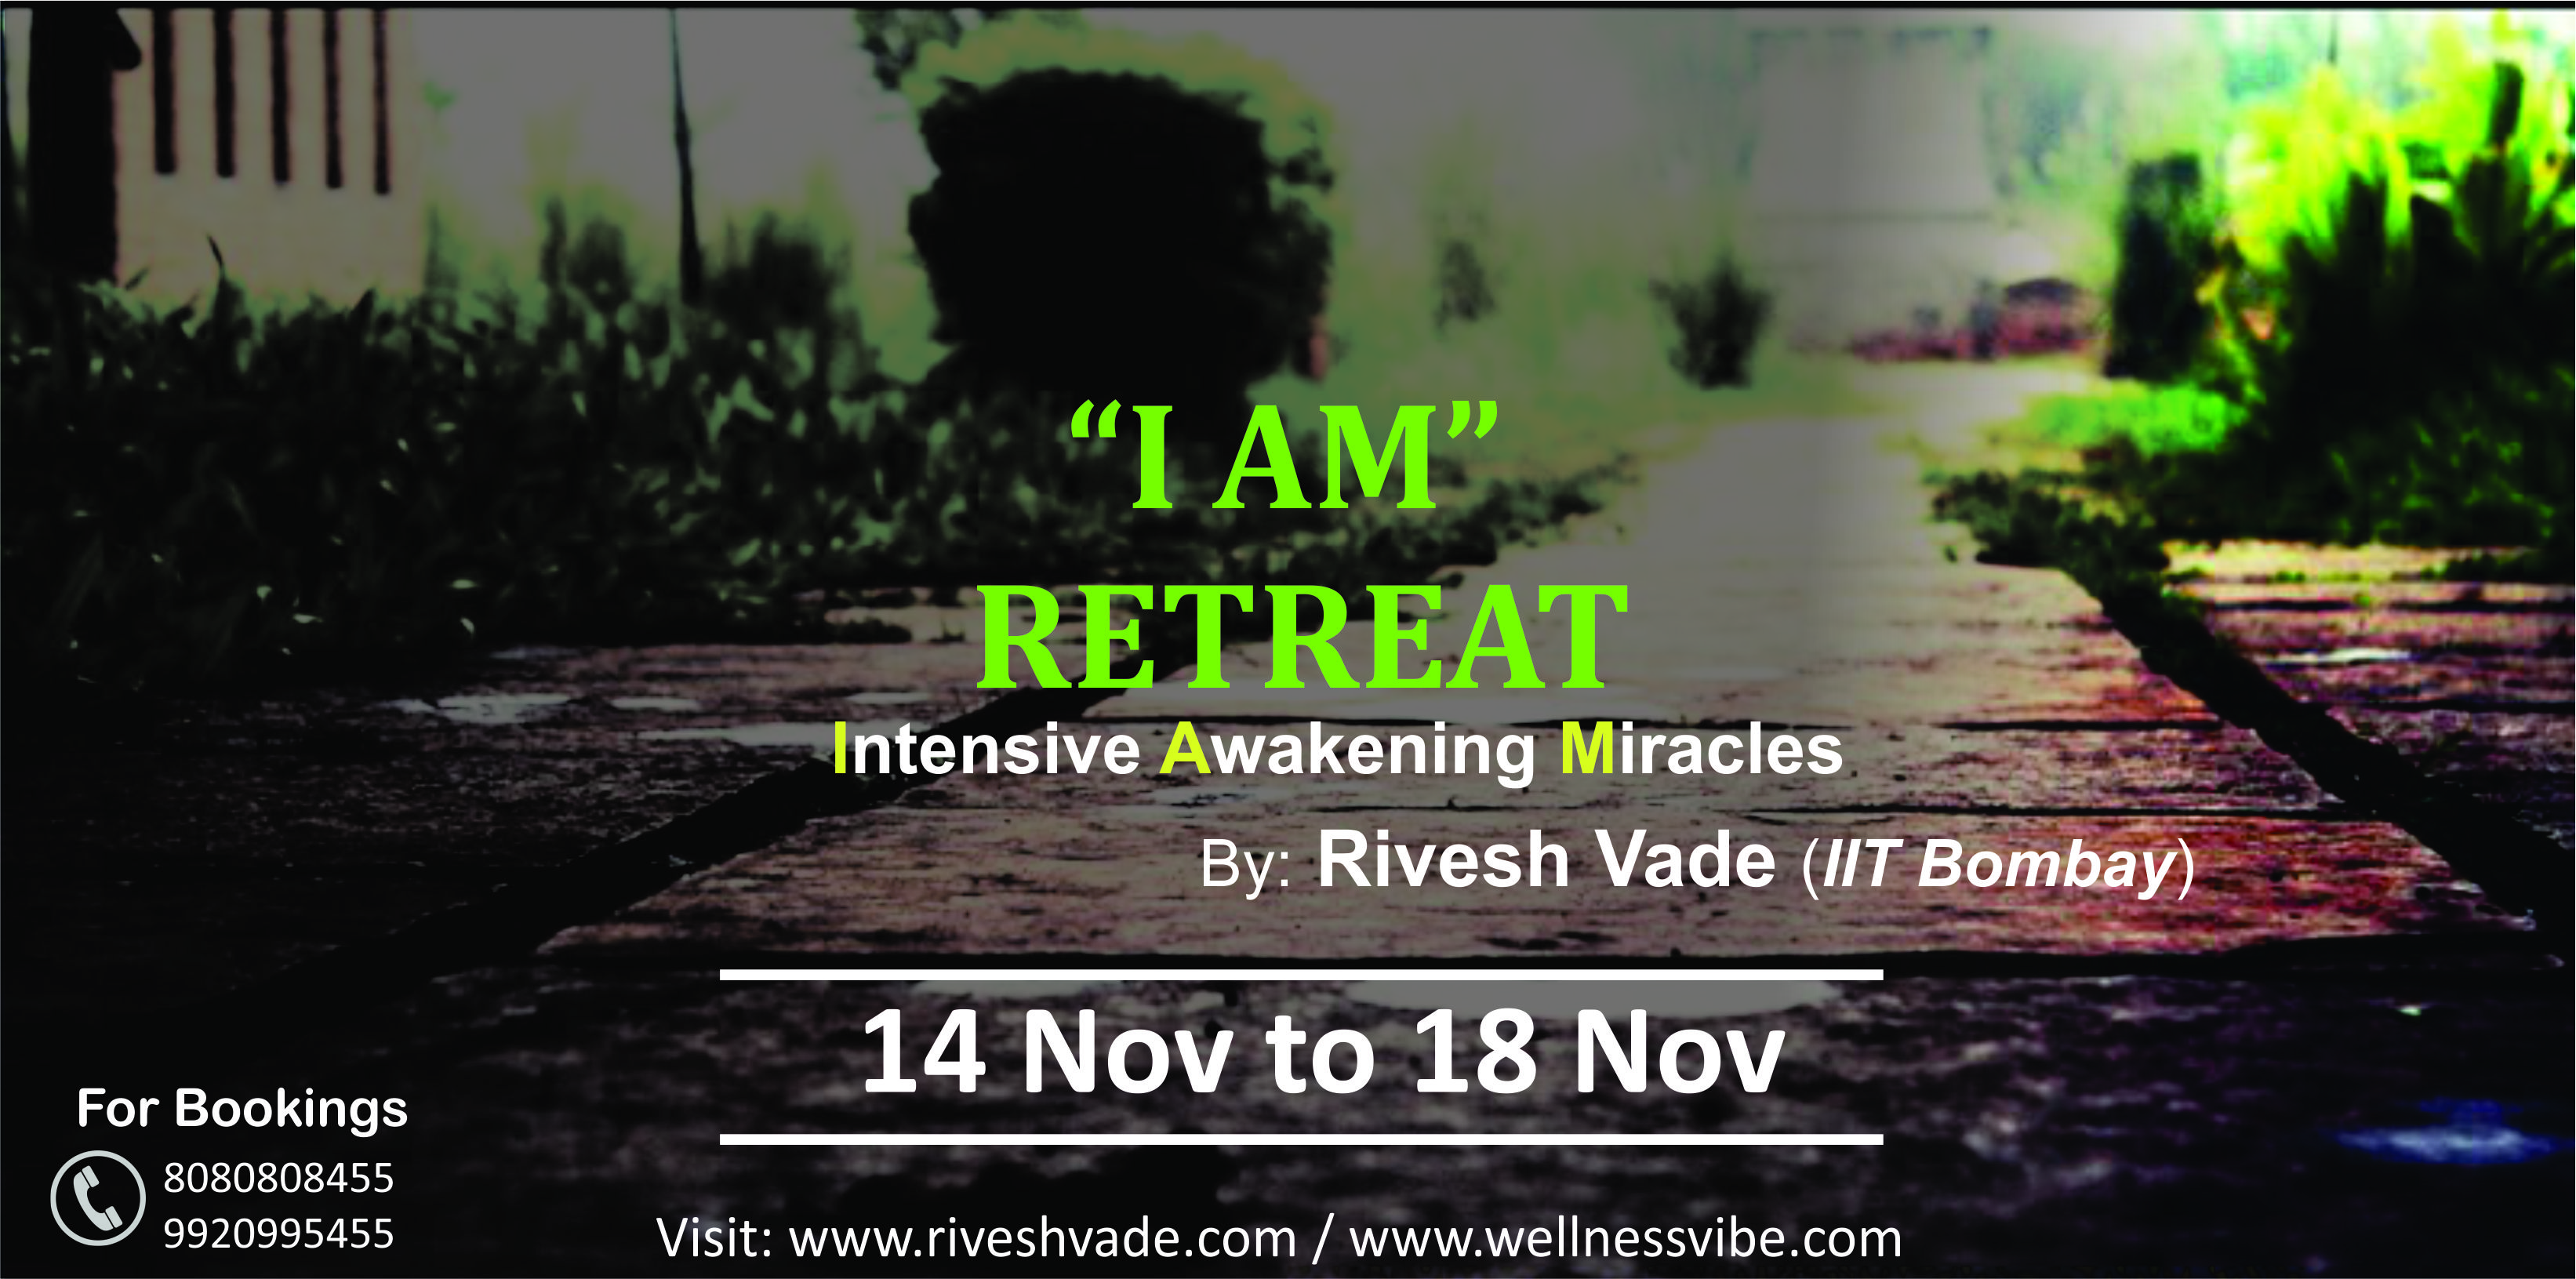 I AM Retreat (Intensive Awakening Miracles)